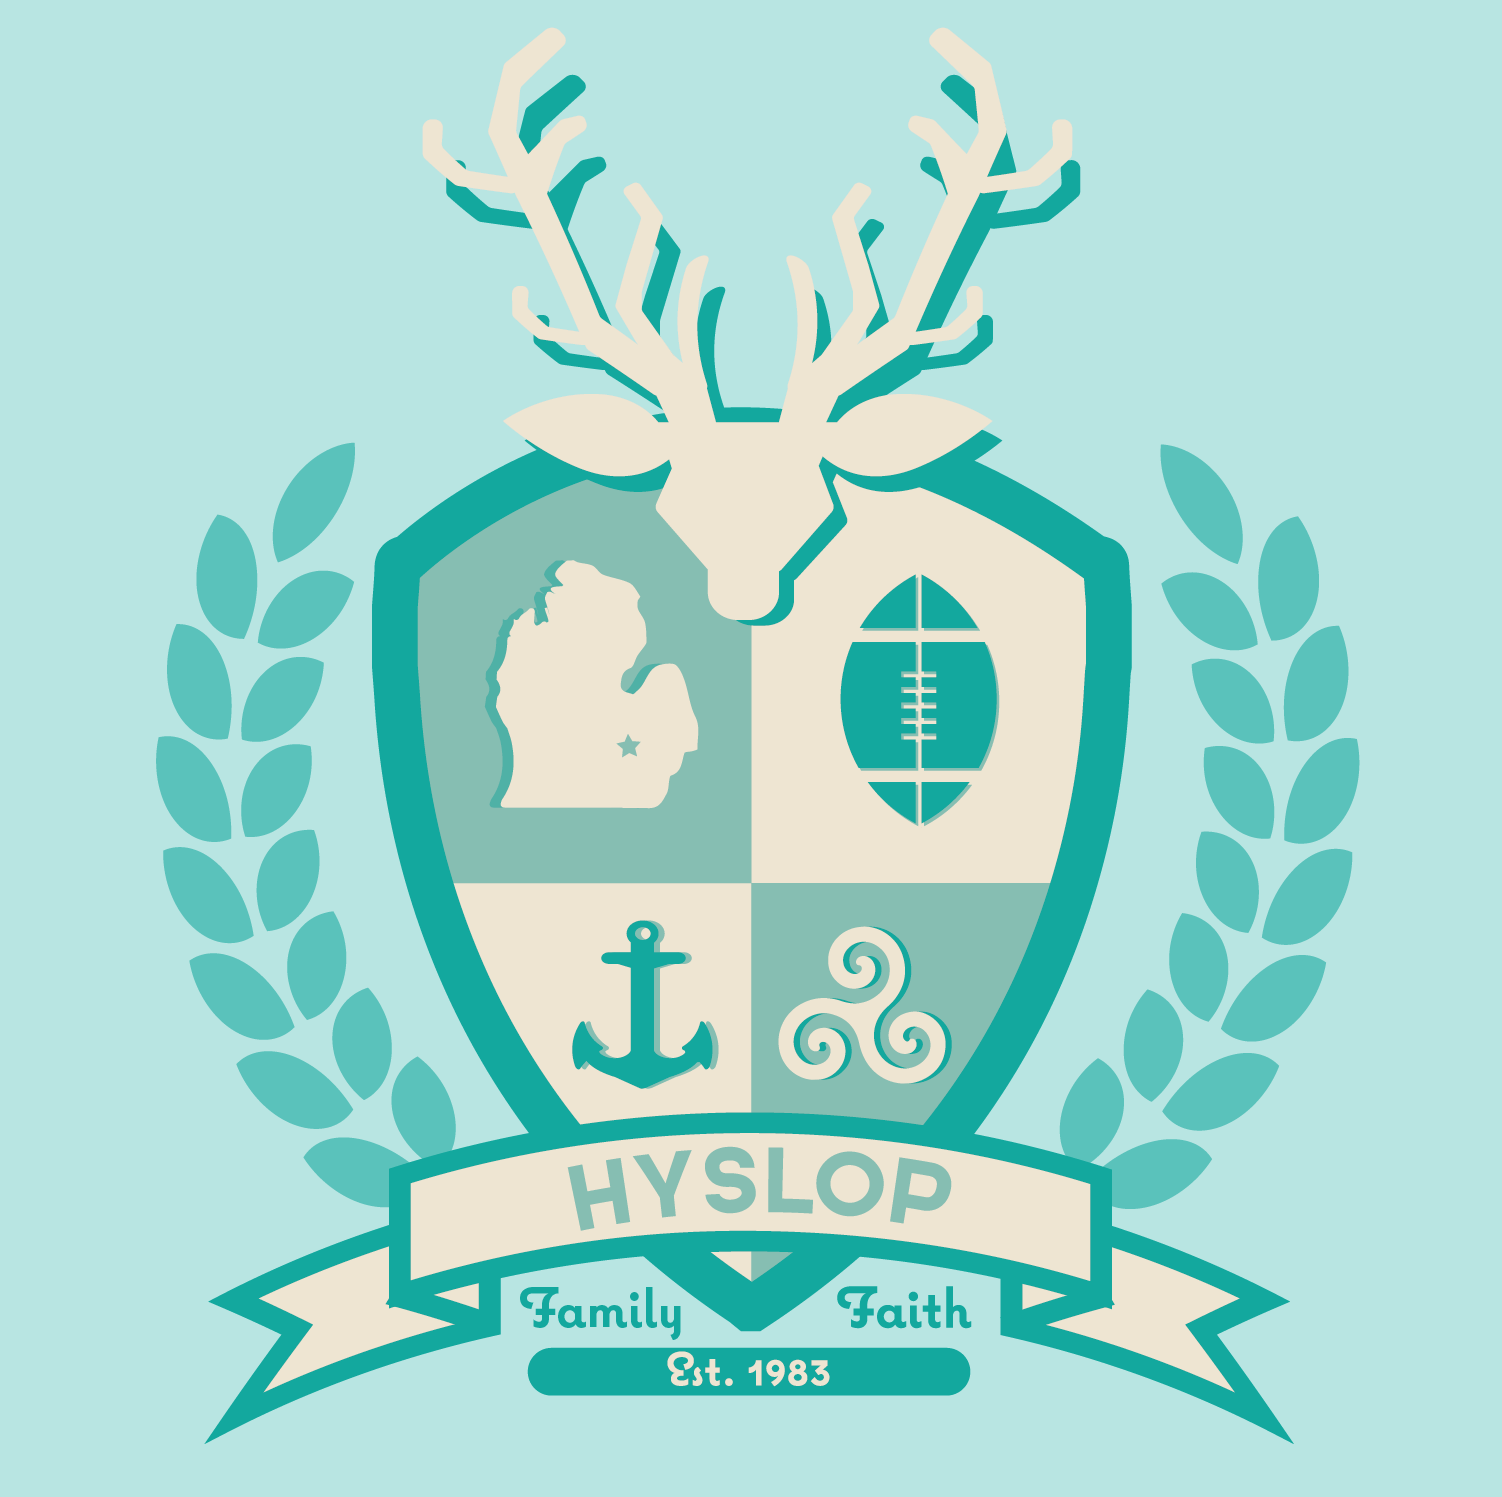 Hyslop family crest skillshare projects the laurals is a representation of our family being 3 generations greek college fraternity and sorority putting it all together it really represents our buycottarizona Images